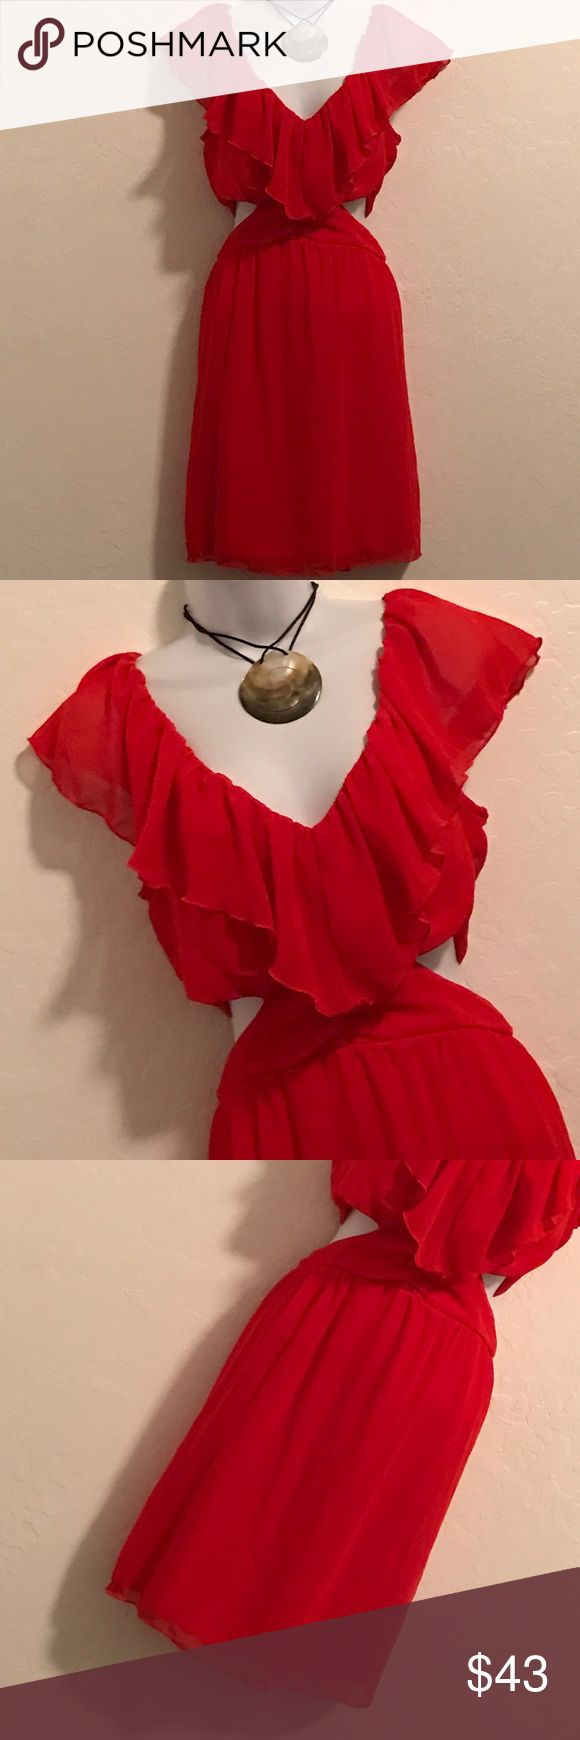 WOT Red Ruffle Cocktail Dress Never Worn, Oh la la, this one is gorgeous, open side, gather front, visible gold back zipper, ruffle top, lined, above knee length. This is a must have. Will be the attention getter at any cocktail party . All you need is some heels  Wet Seal Dresses